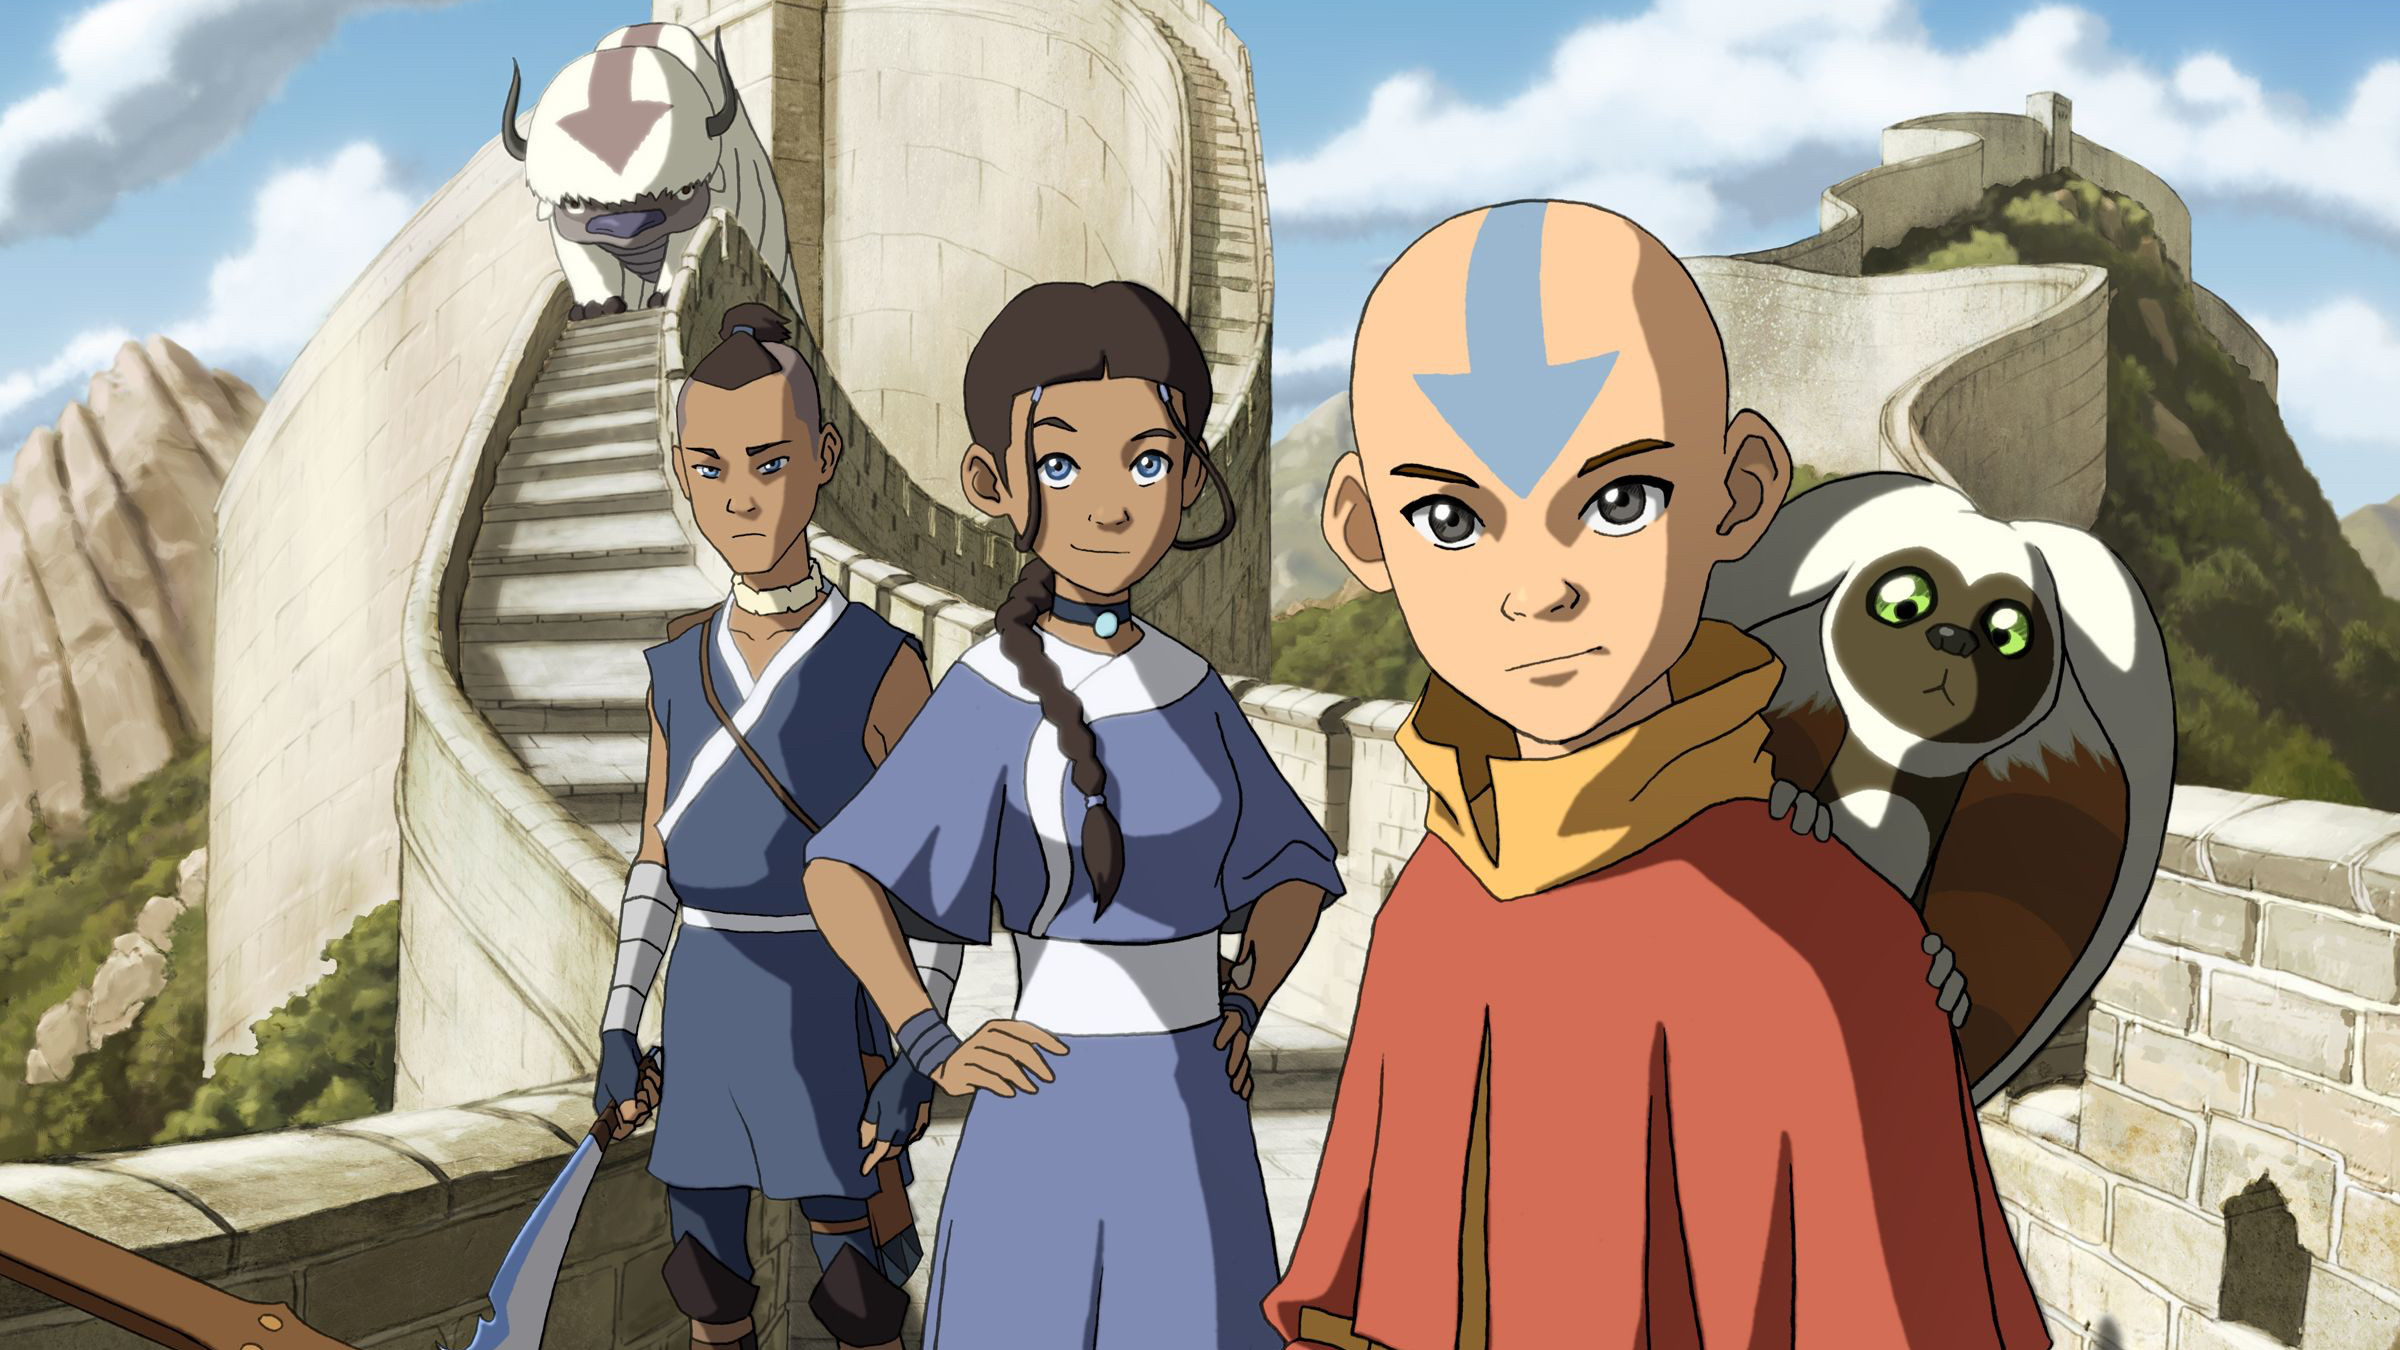 Best Paramount Plus shows and movies - Avatar the Last Airbender